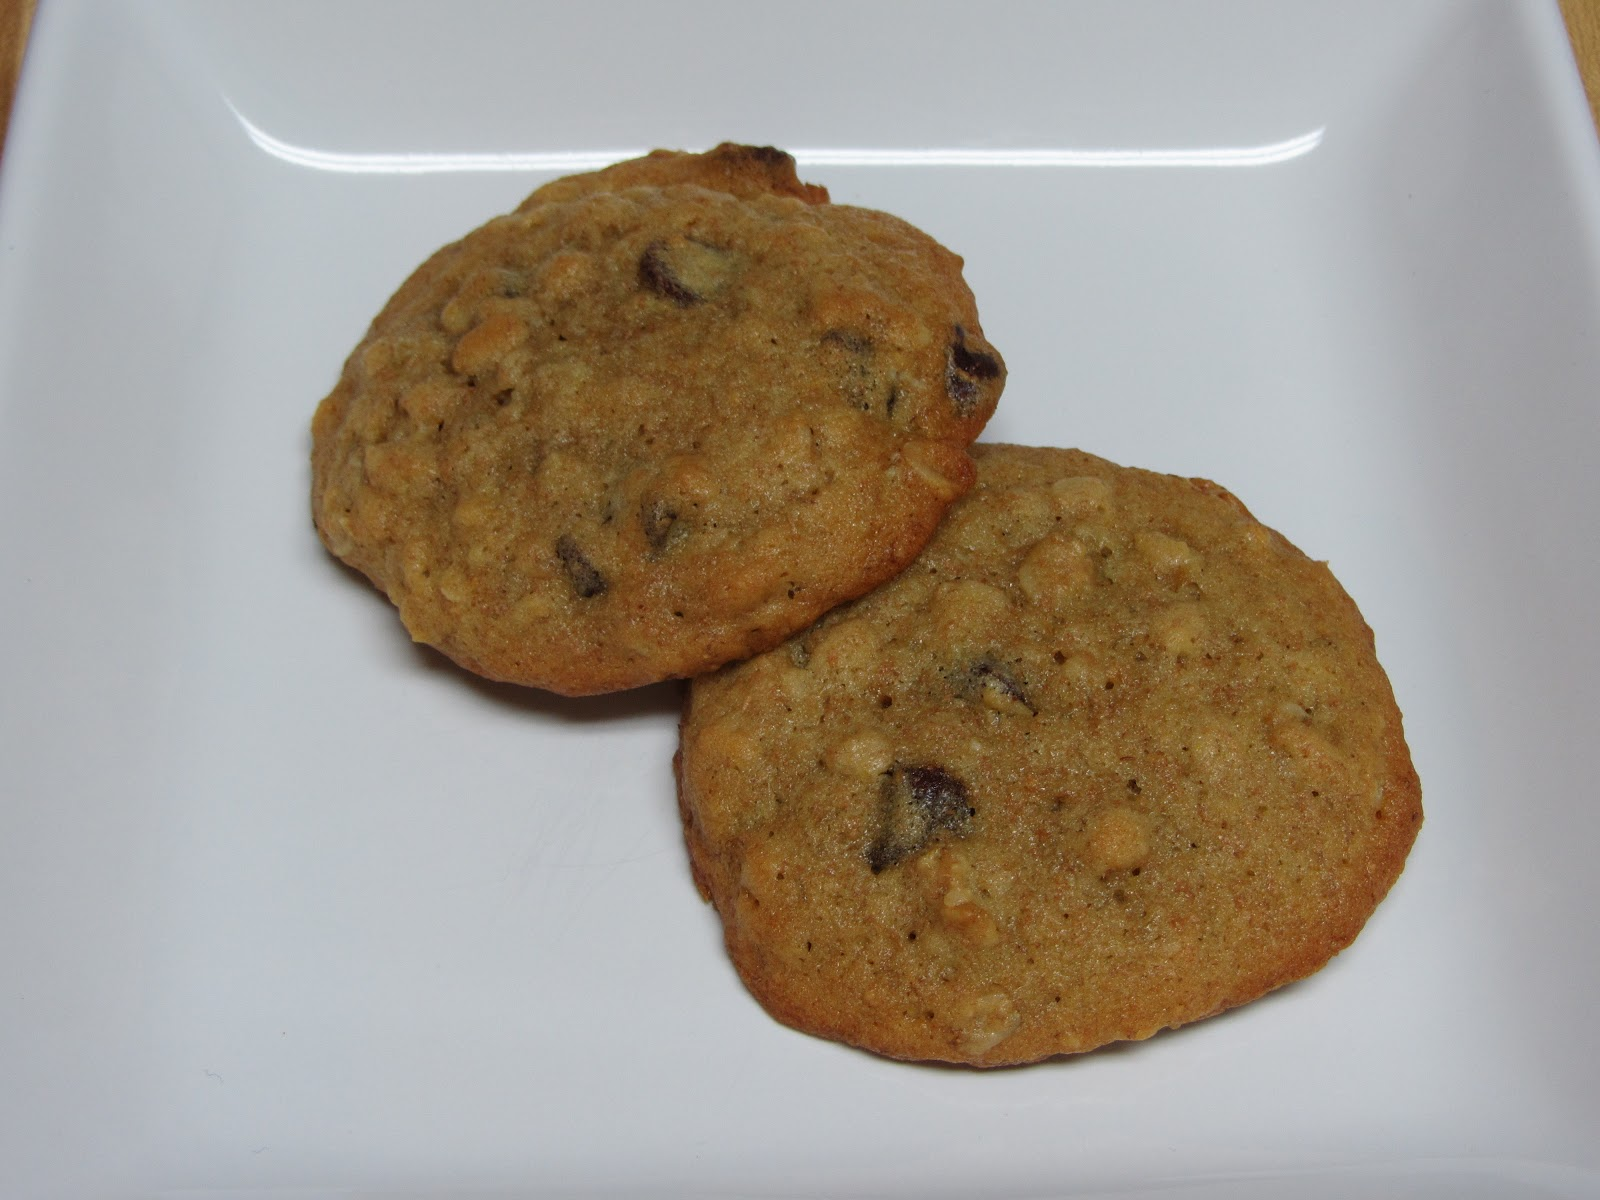 Been There Baked That: Banana-Walnut Chocolate Chip Cookies